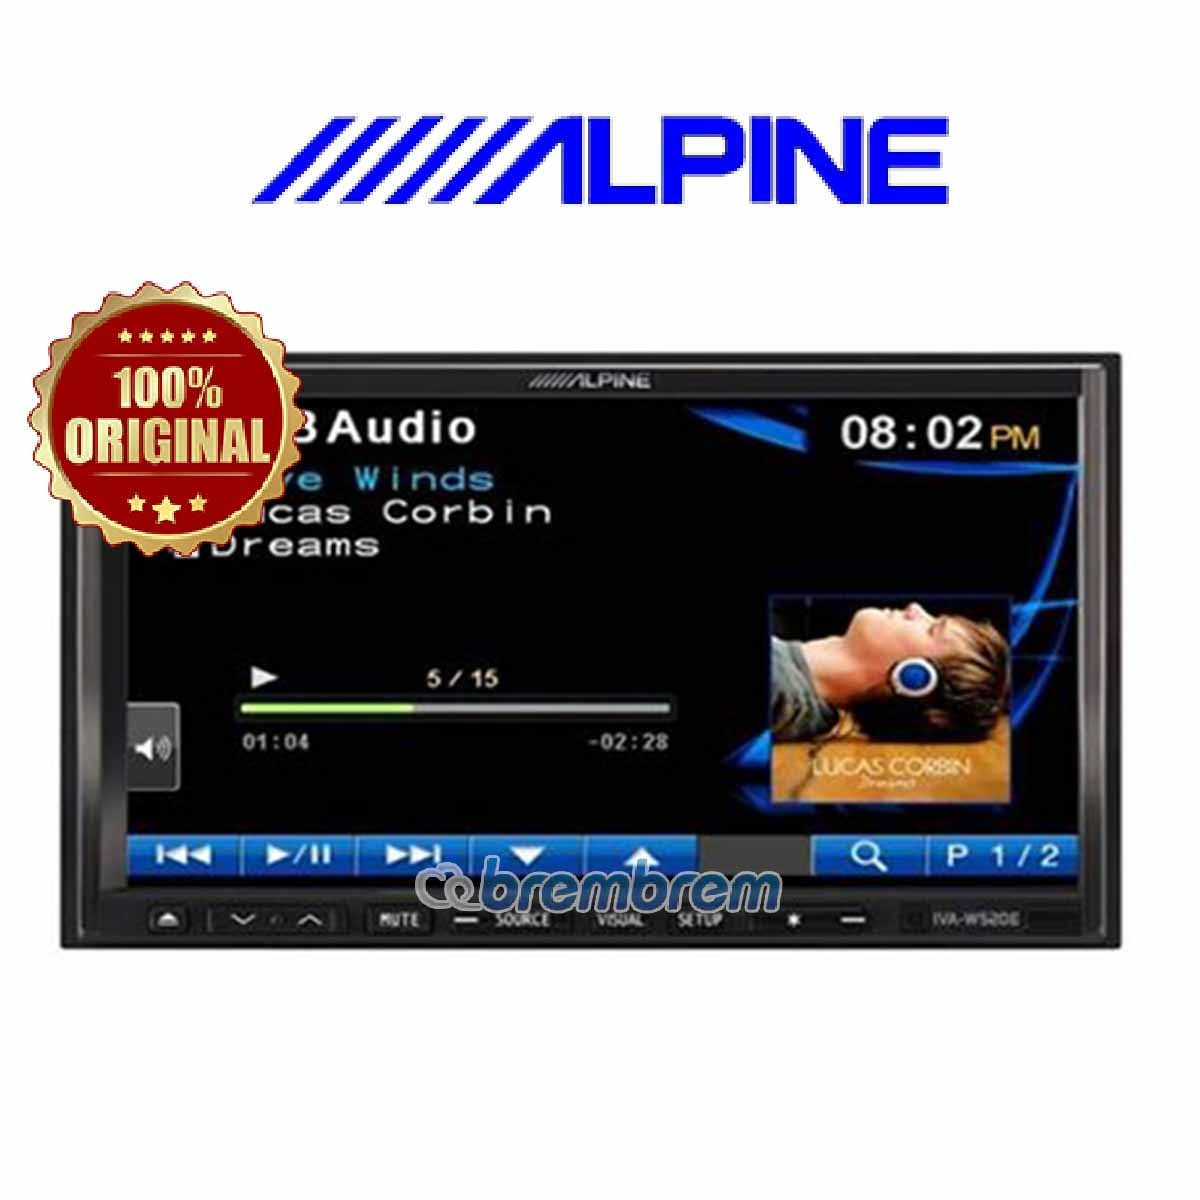 ALPINE IVA-W520 E - HEADUNIT DOUBLE DIN